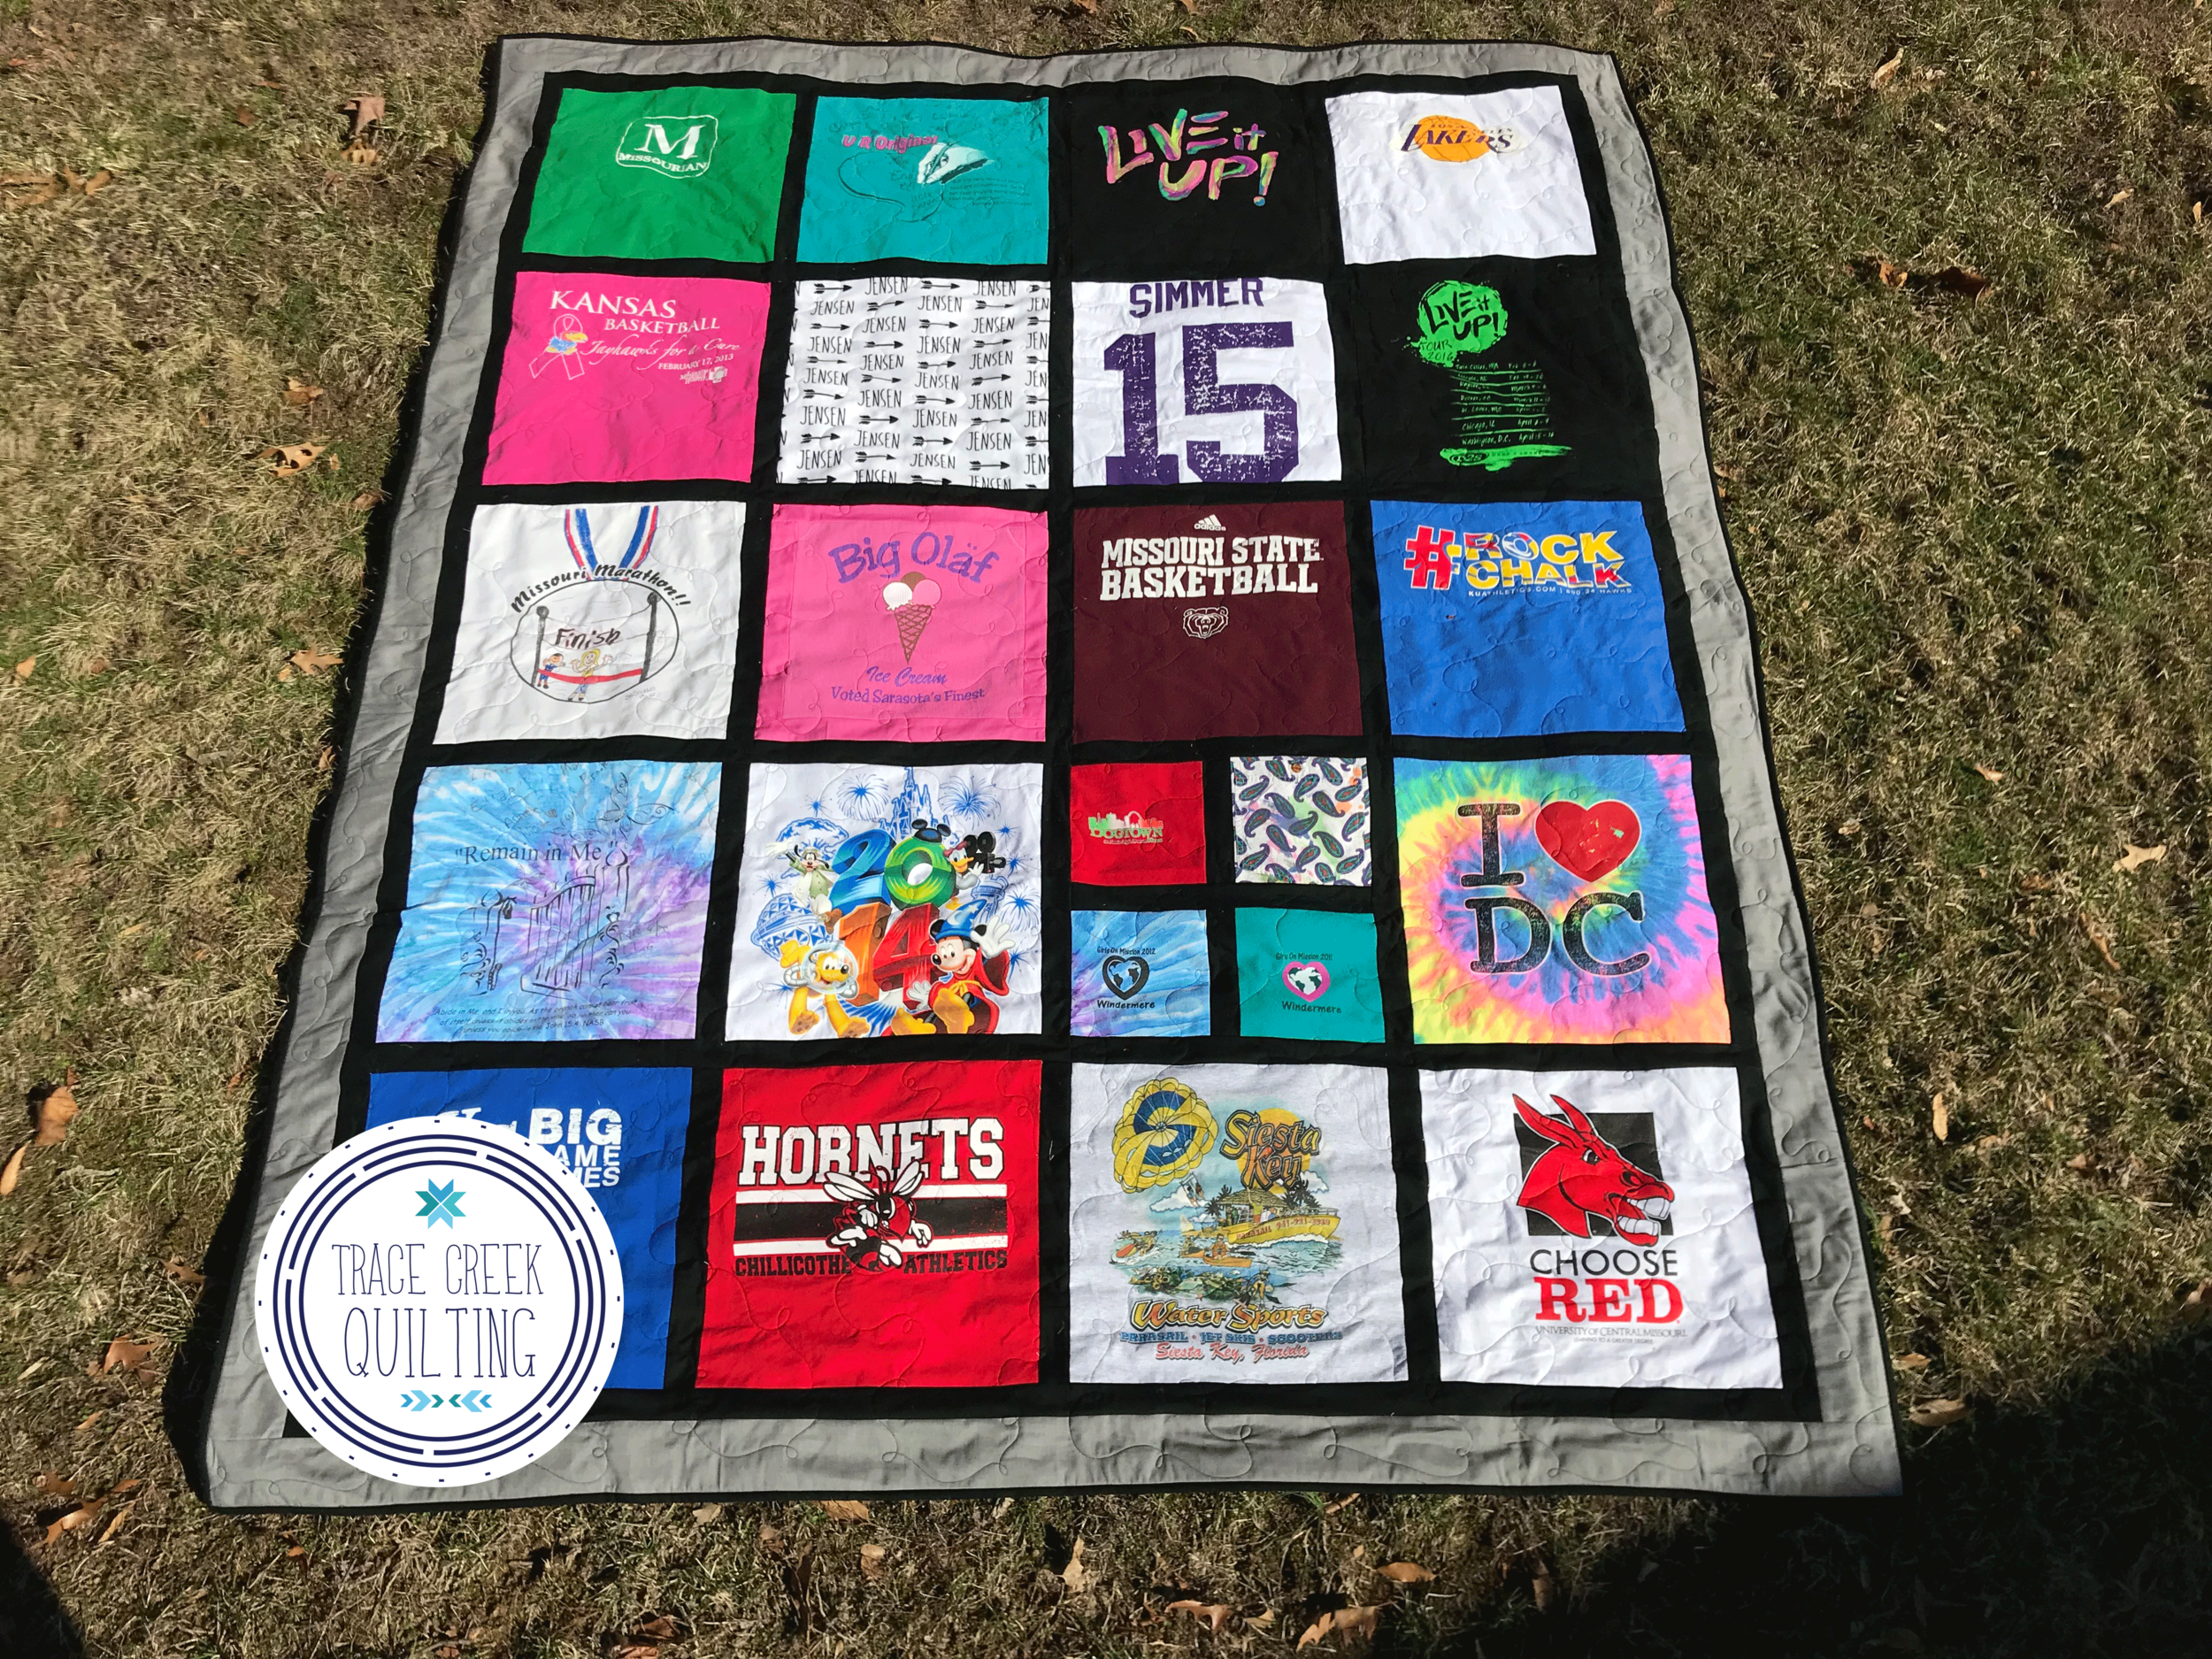 TShirt-Quilt-Trace-Creek-Quilting-062.png